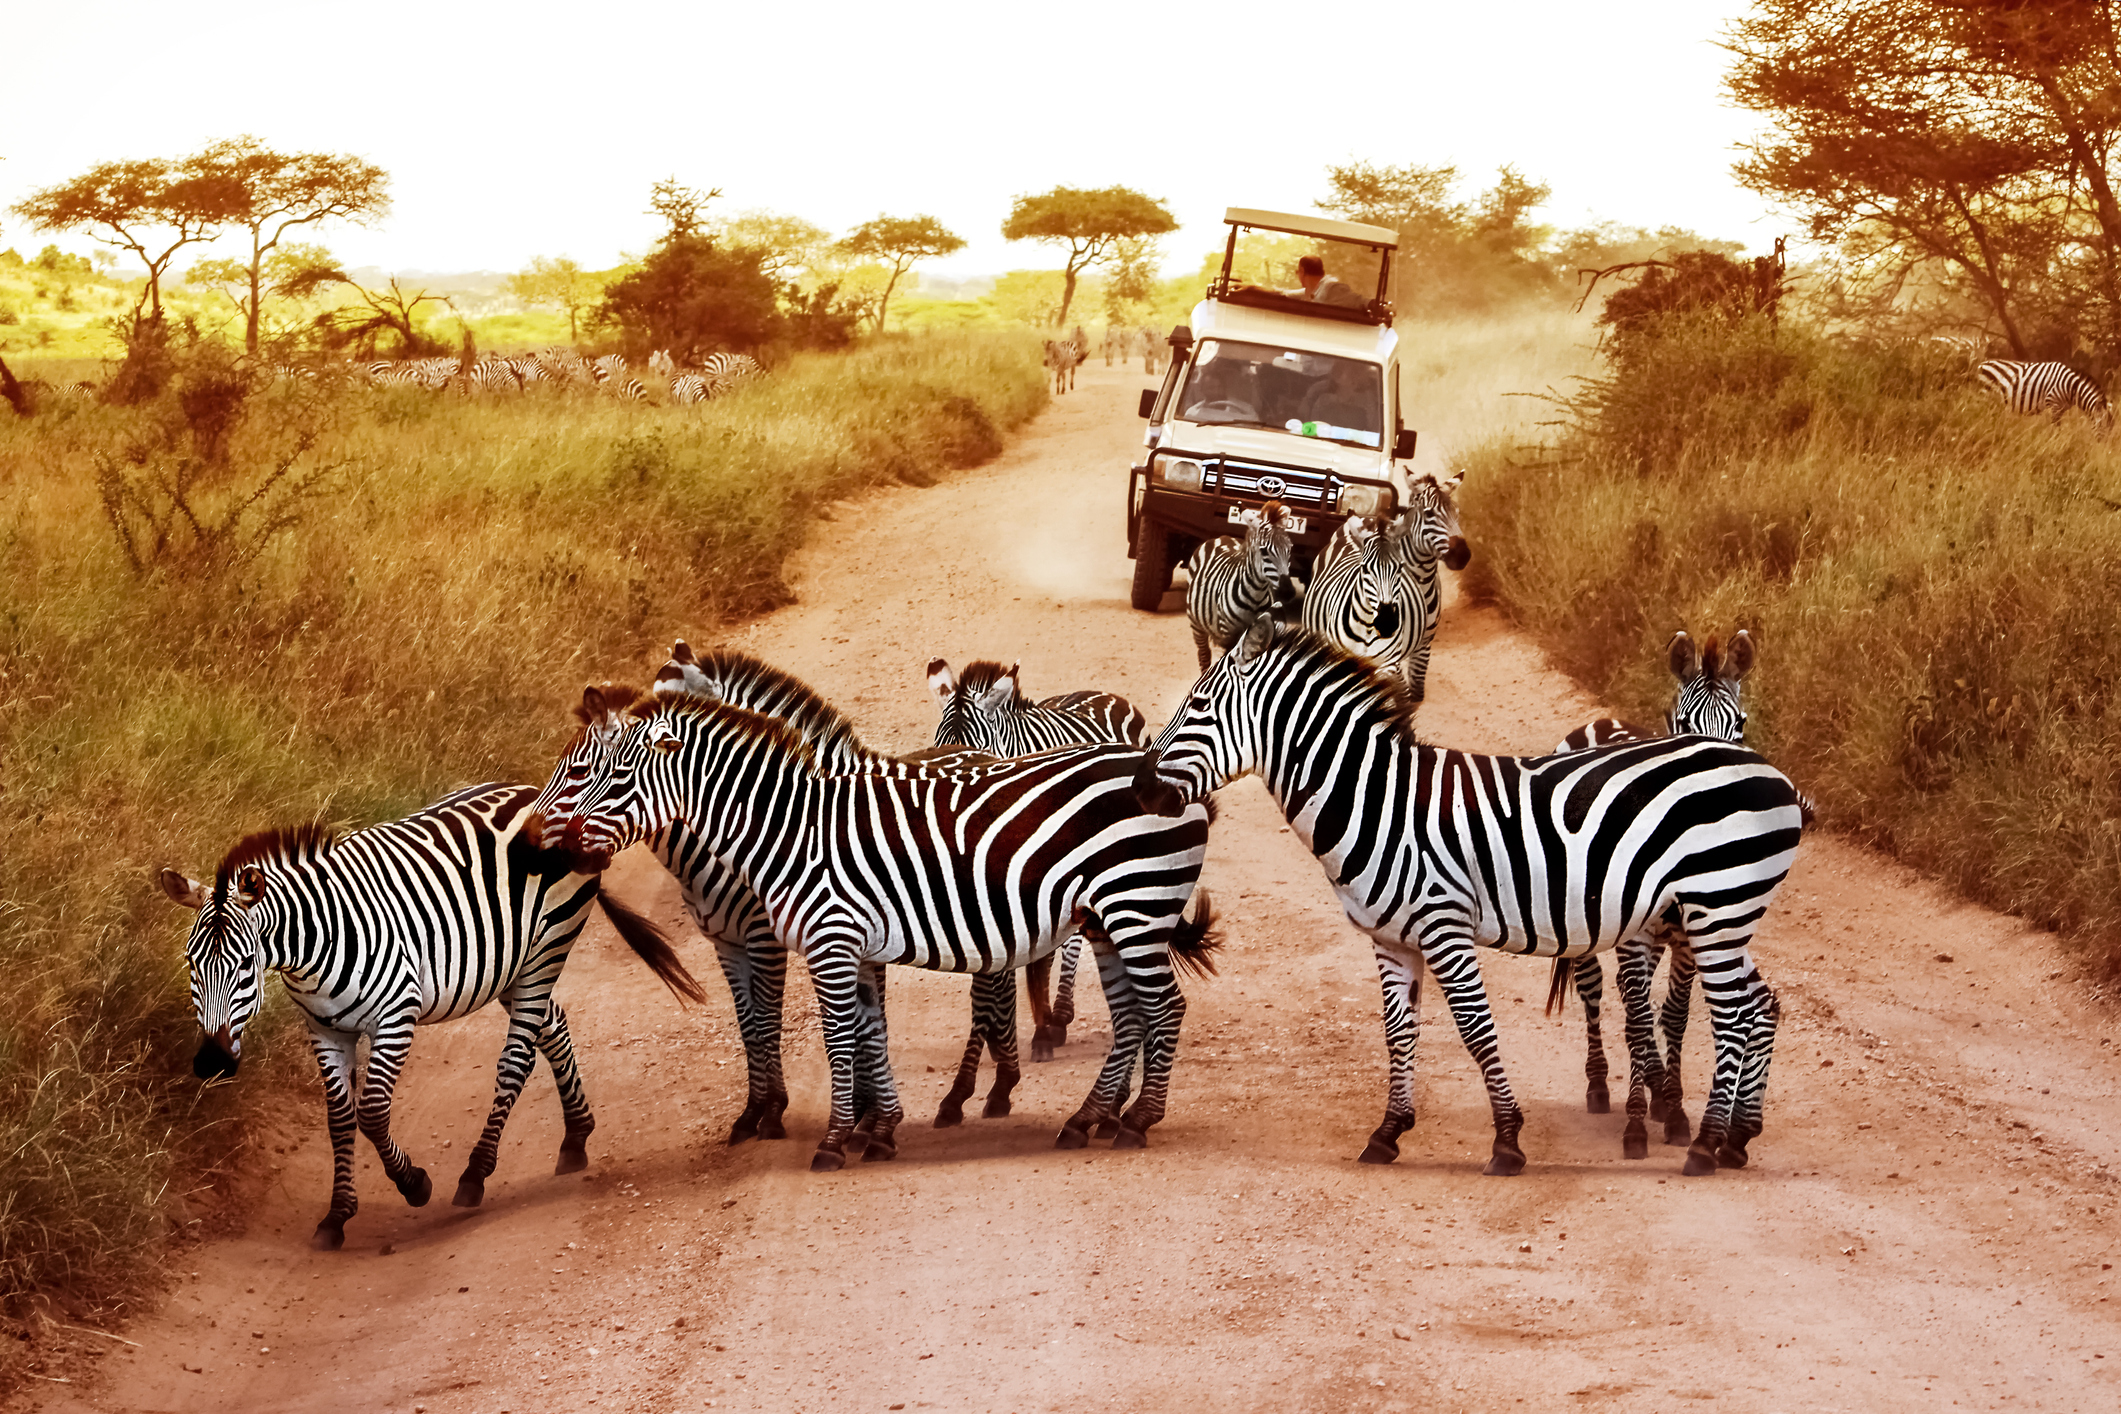 Serengeti-National-Park-Tansania-Virtuelle-Reisen-itravel